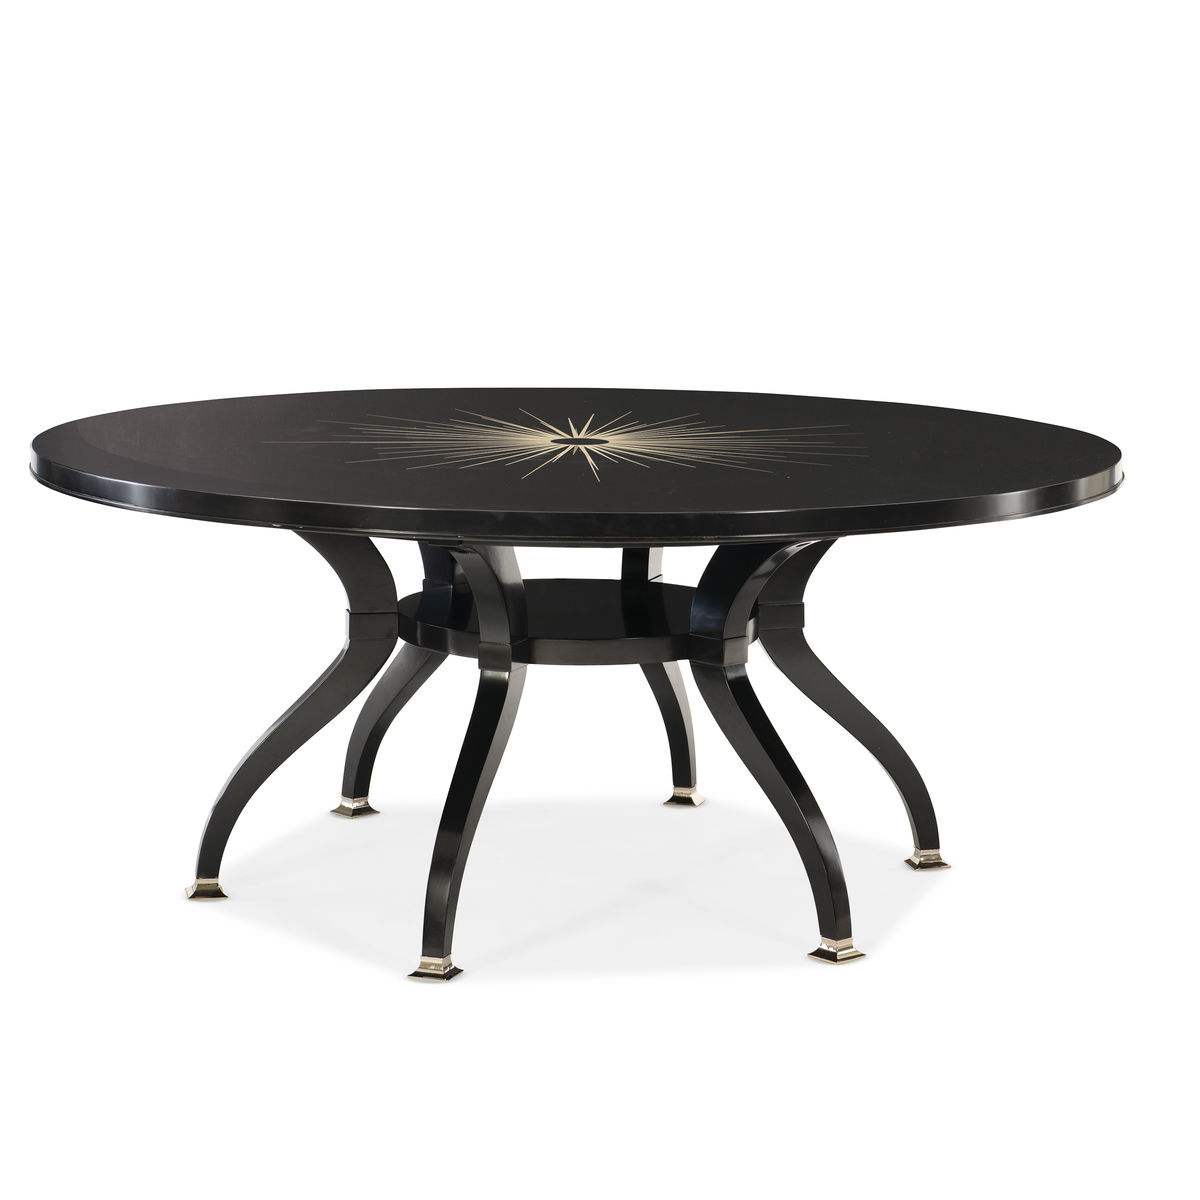 Total Eclipse Round Dining Table By Caracole